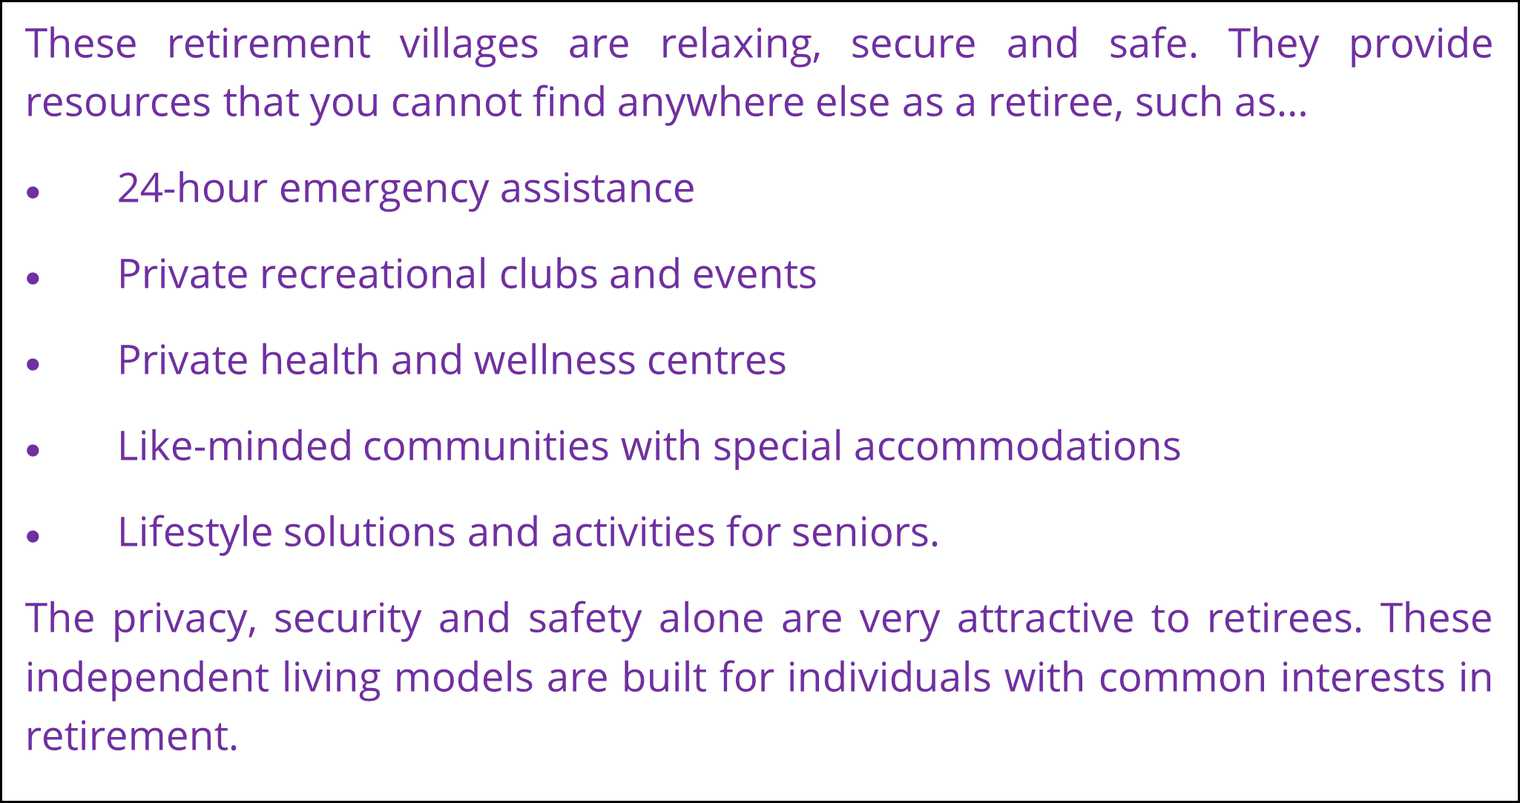 These retirement villages are relaxing, secure and safe. They provide resources that you cannot find anywhere else as a retiree